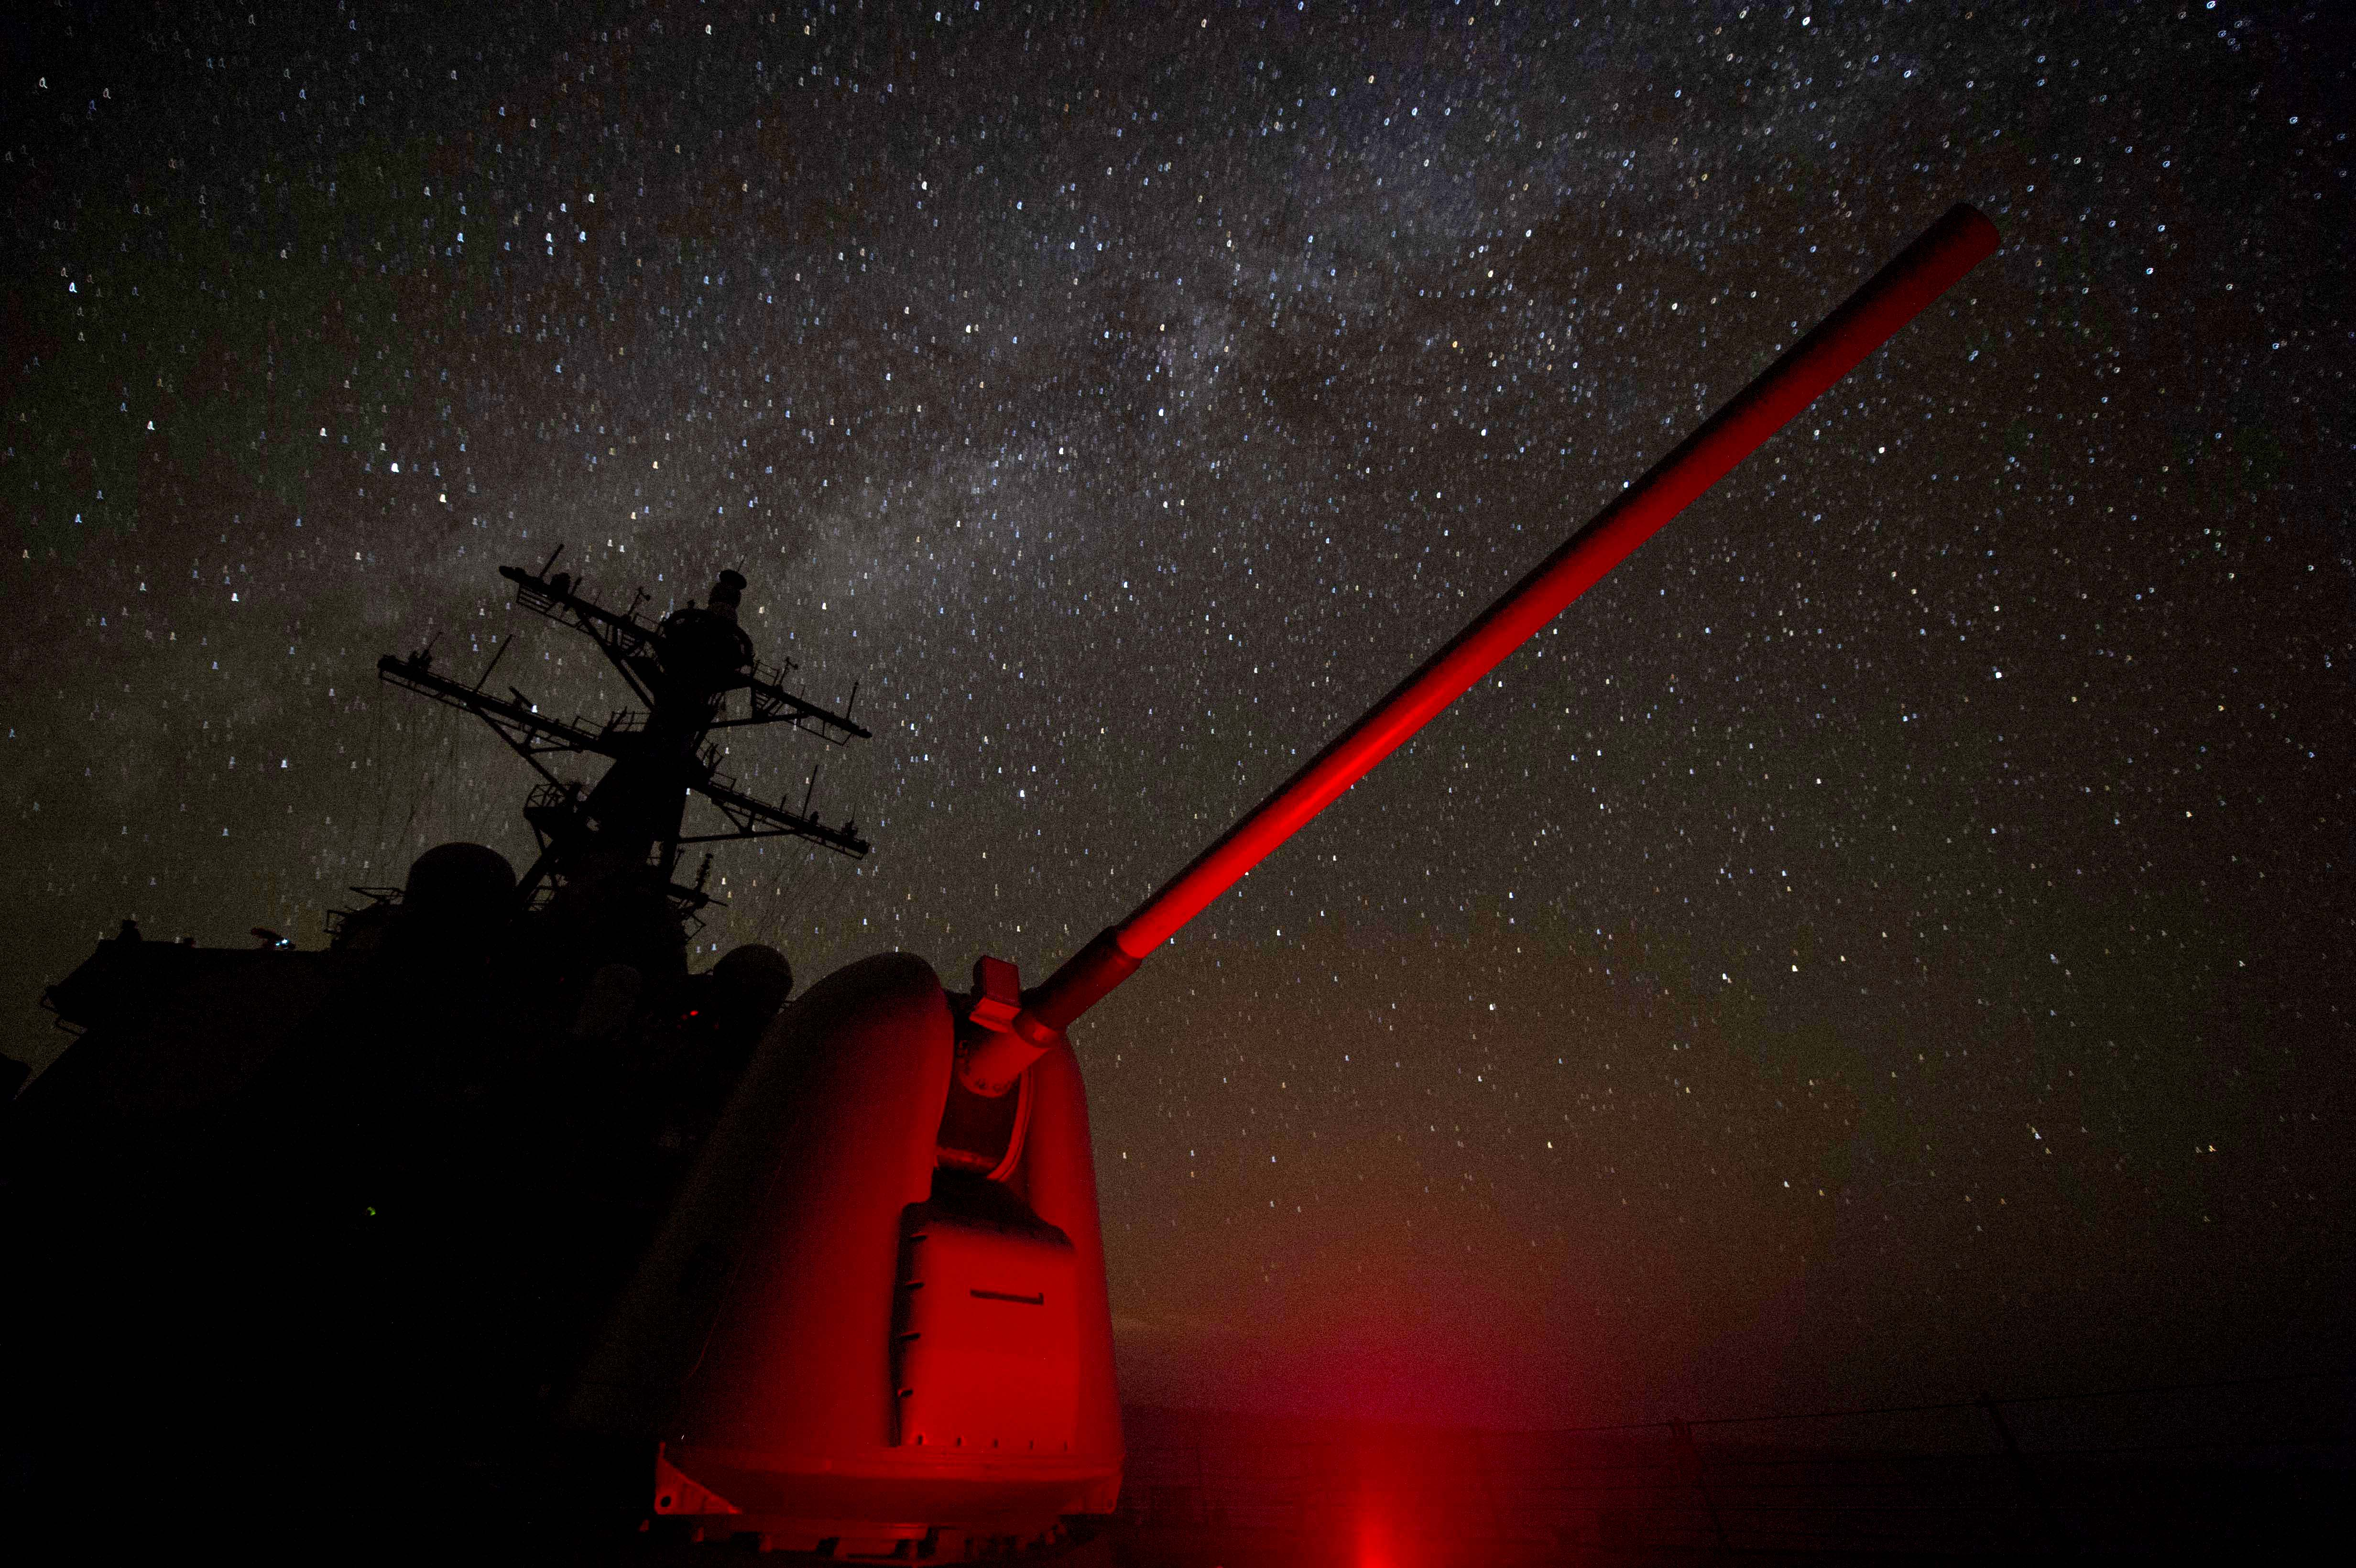 The MK 45 5-inch lightweight gun and superstructure aboard USS Carney (DDG-64) while on patrol in the Mediterranean Sea on Sept. 6, 2016. US Navy Photo